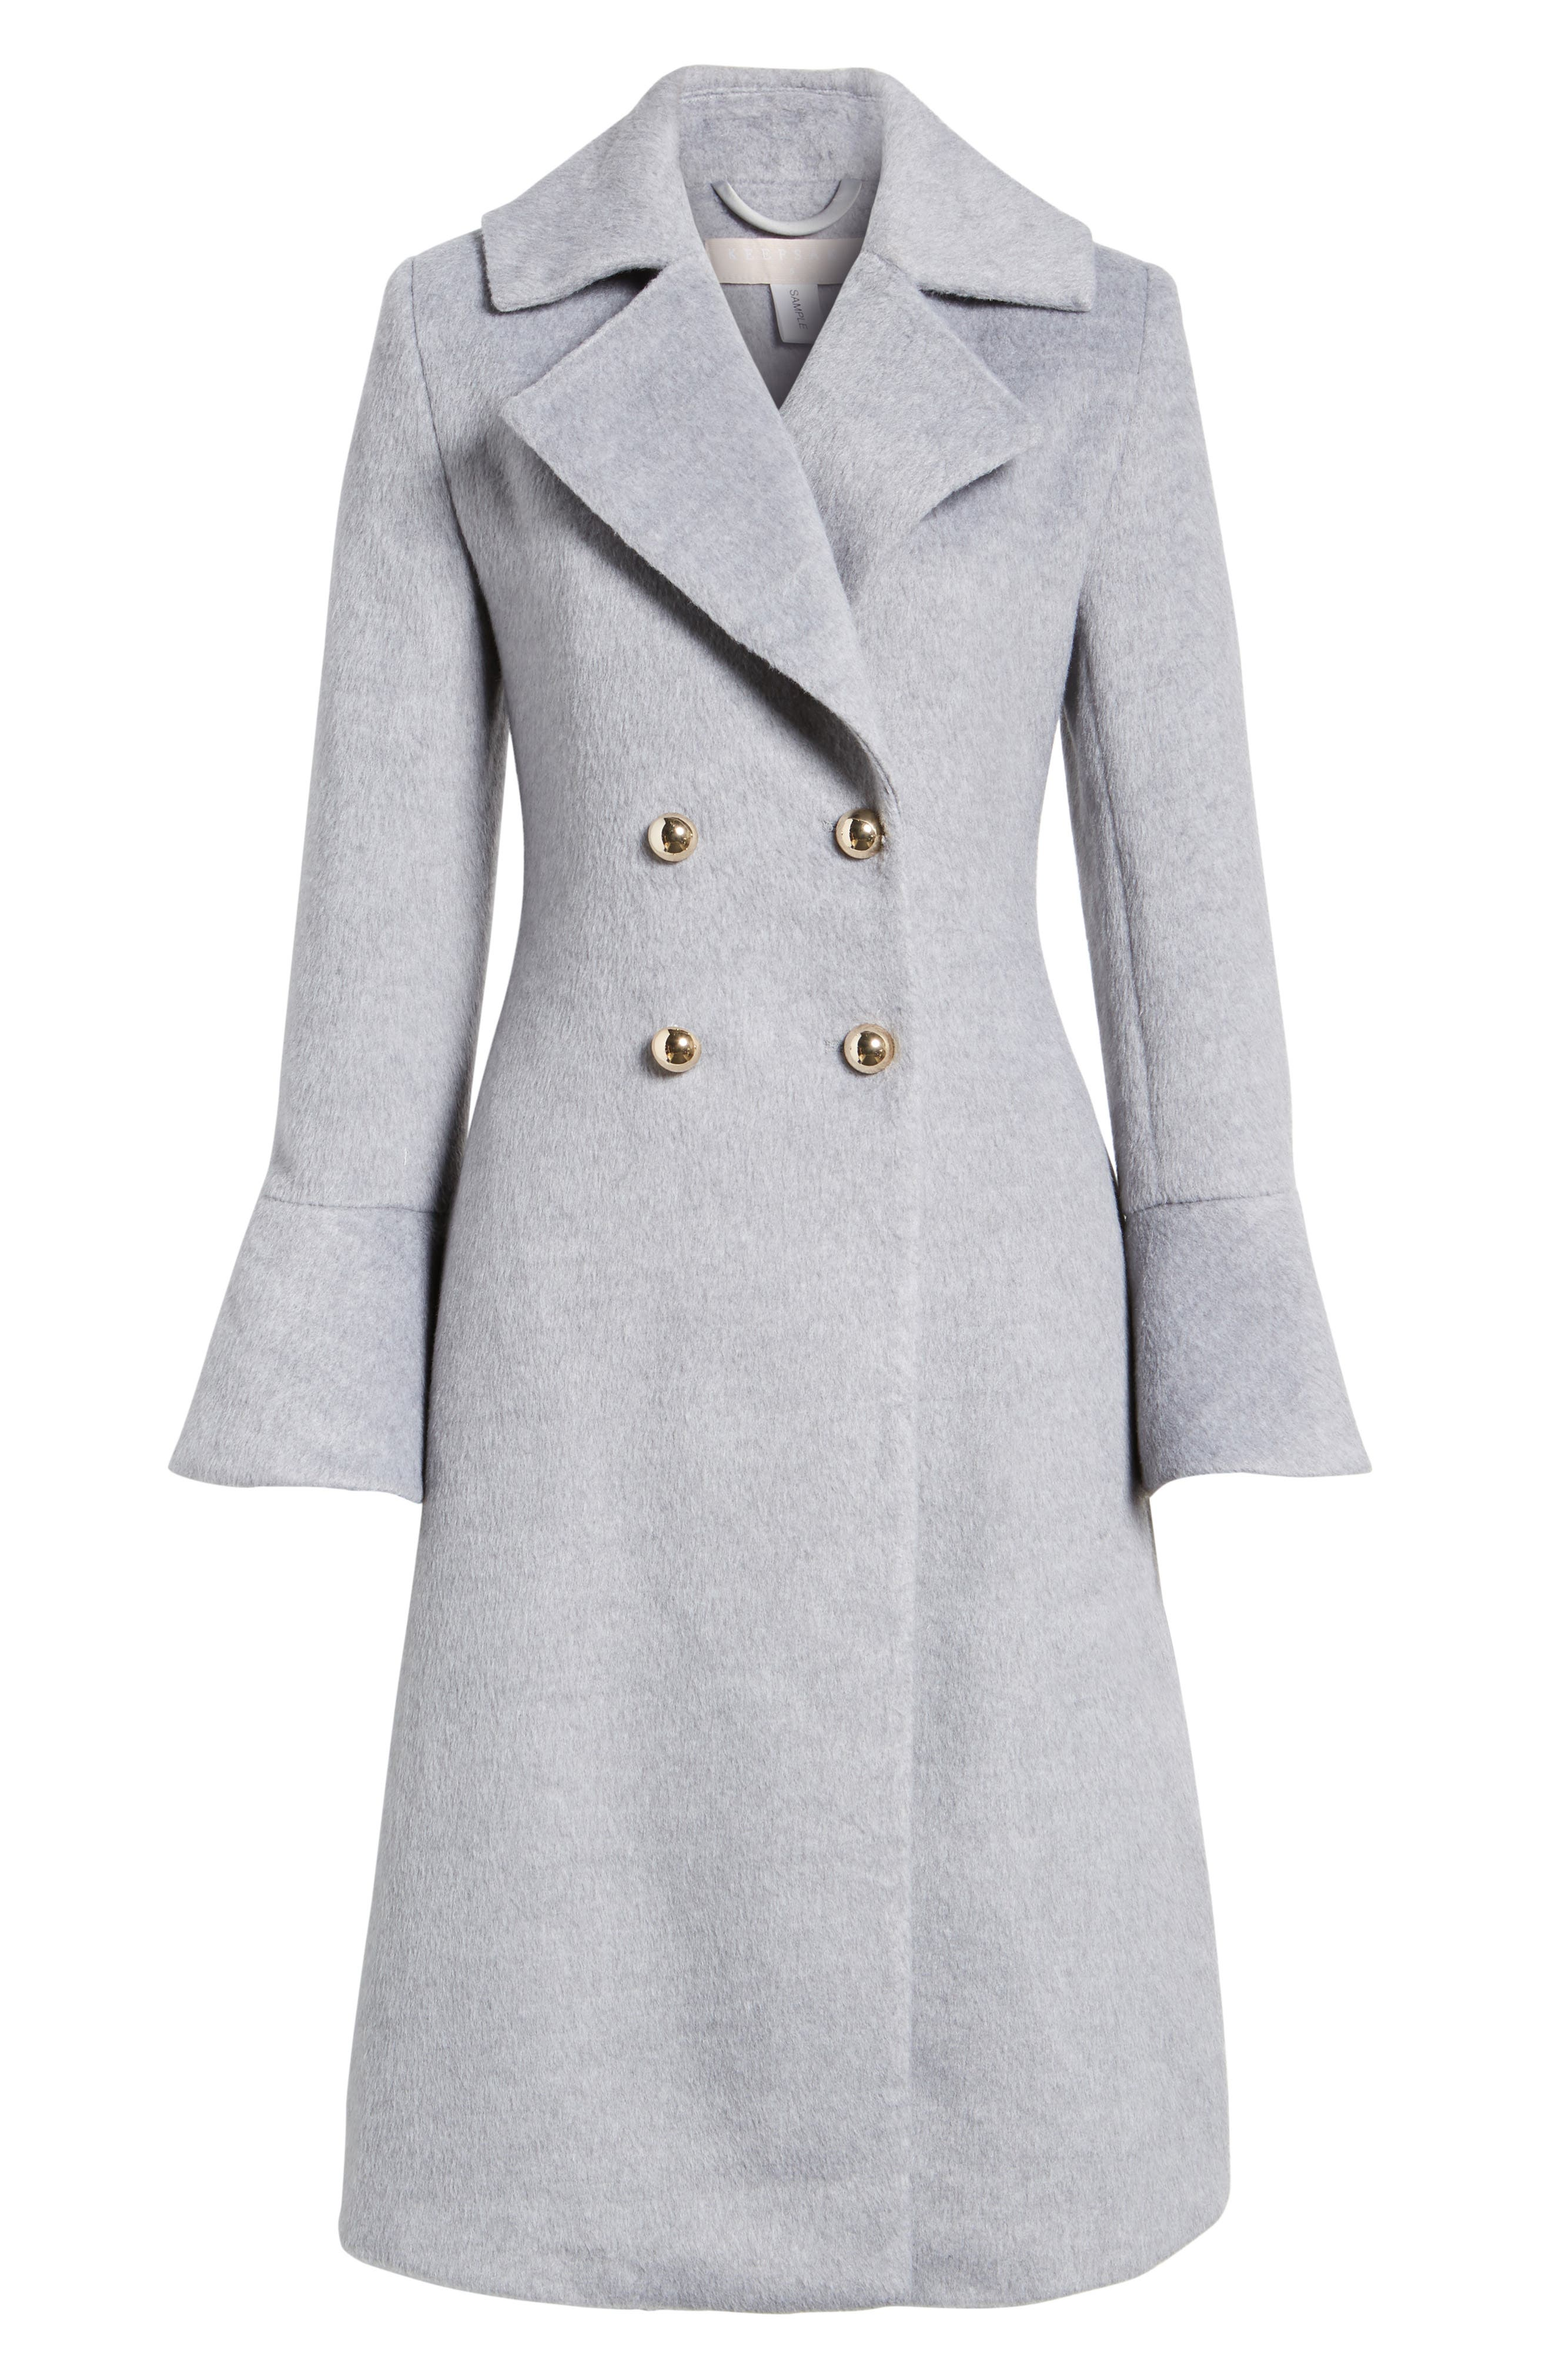 Intuition Water Repellent Coat,                             Alternate thumbnail 5, color,                             020